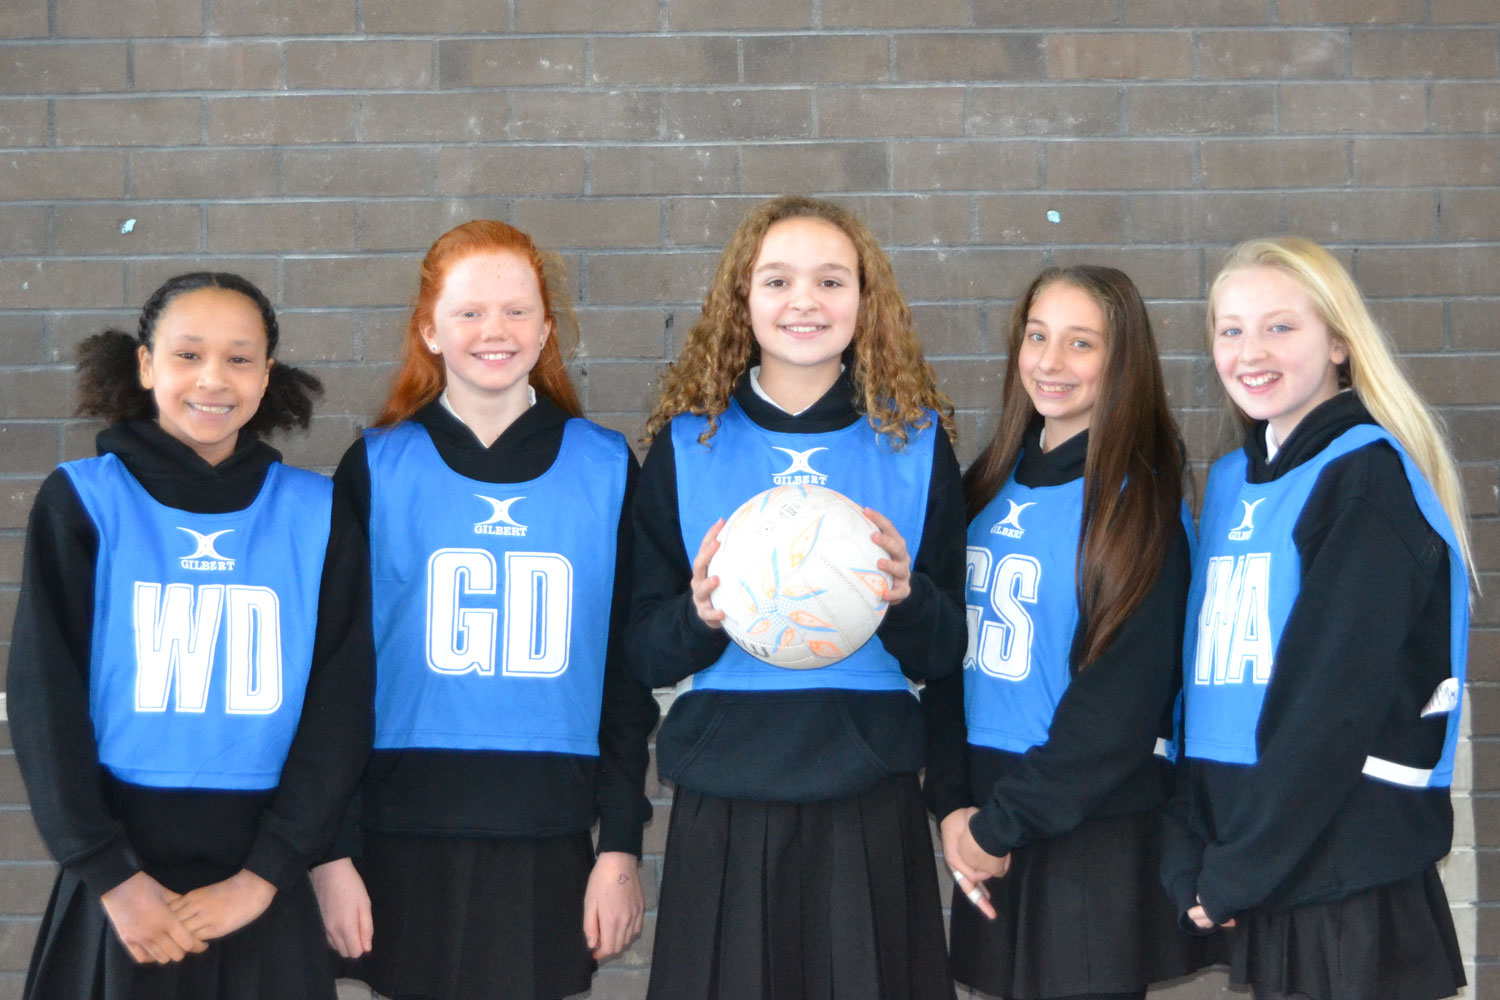 Photo: (LEFT TO RIGHT): Eve Midgley, Eva Curran, Rachel McCormack, Isobel Farmer, Millie Helliwell